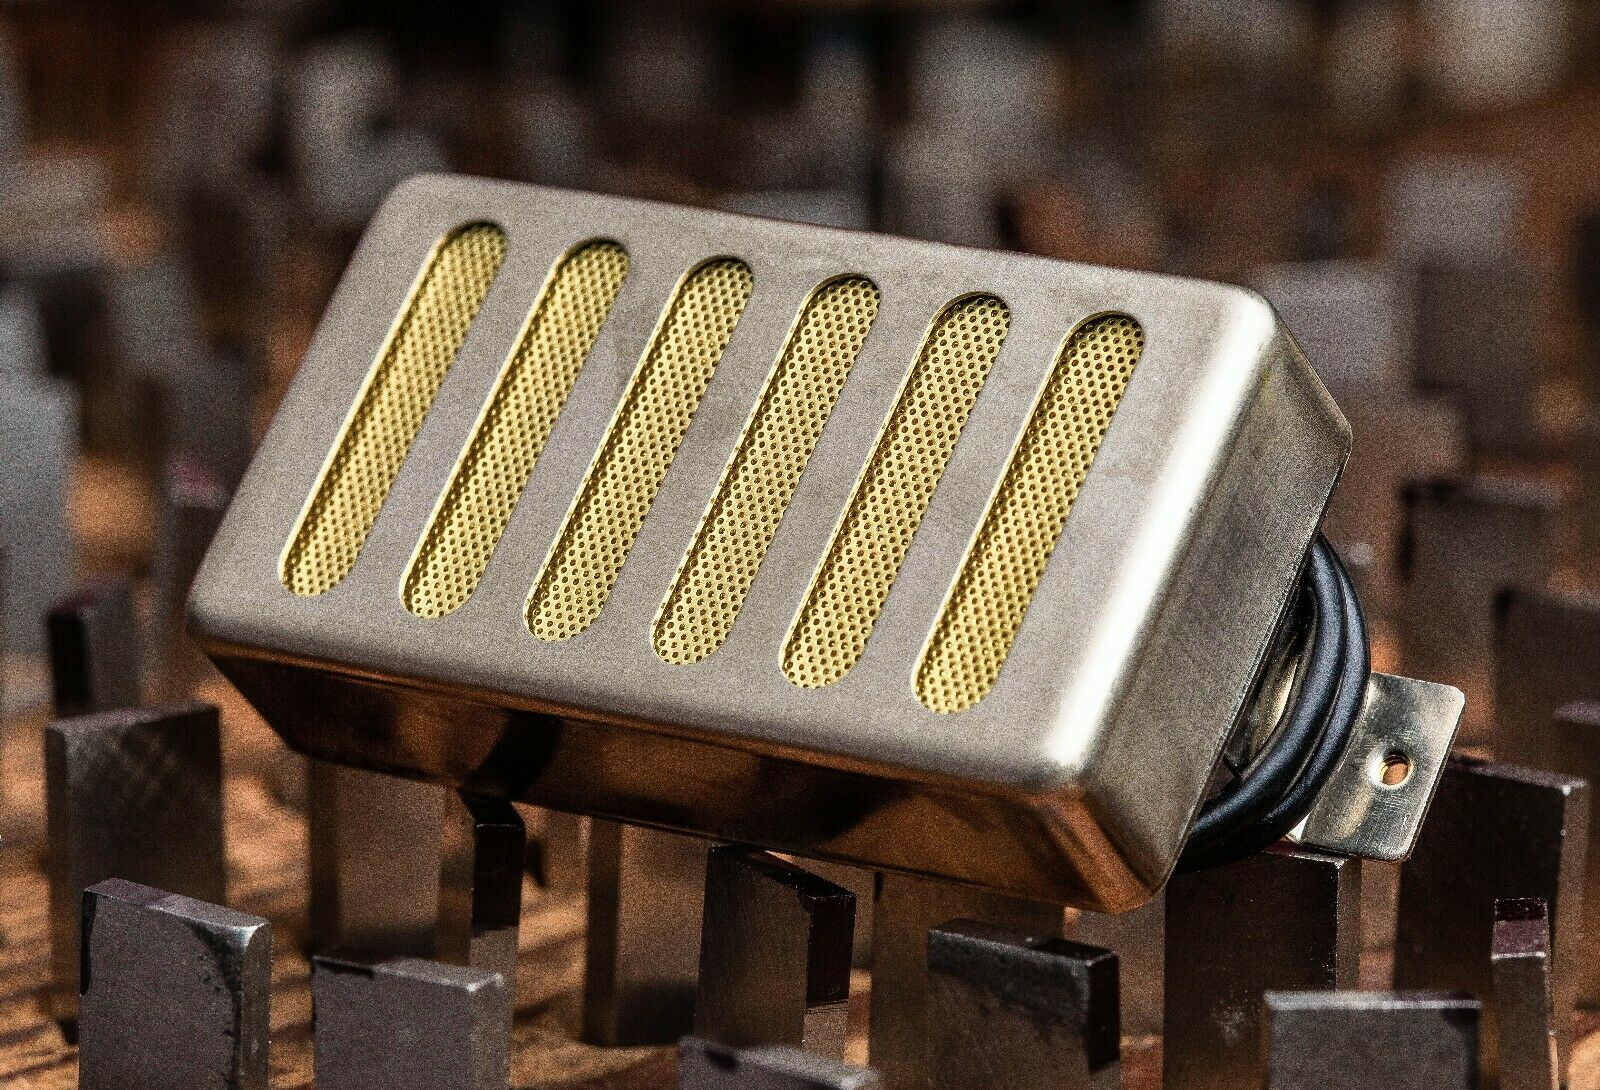 Seymour Duncan Pearly Gates Humbucker Pickup Neck Raw Nickel Radiator Cover Gold